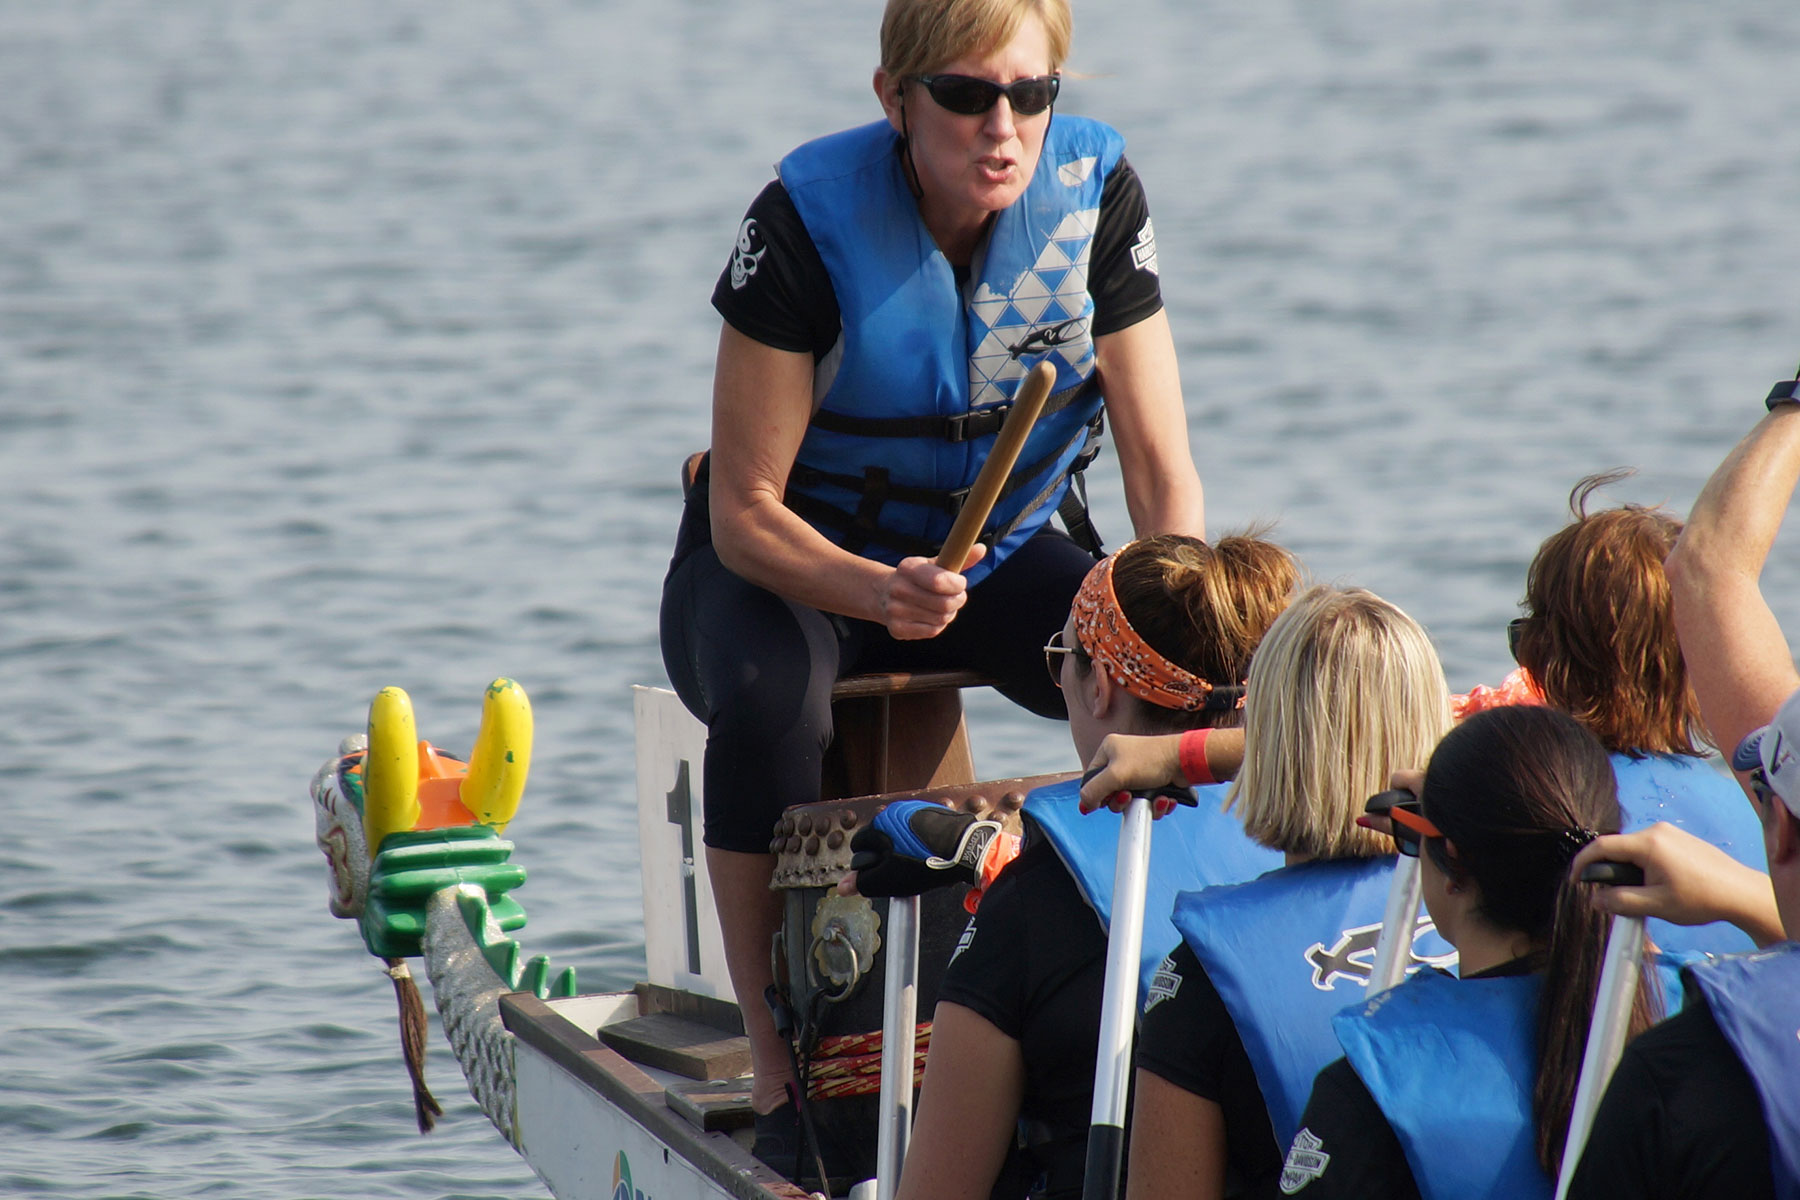 081118_dragonboat_090